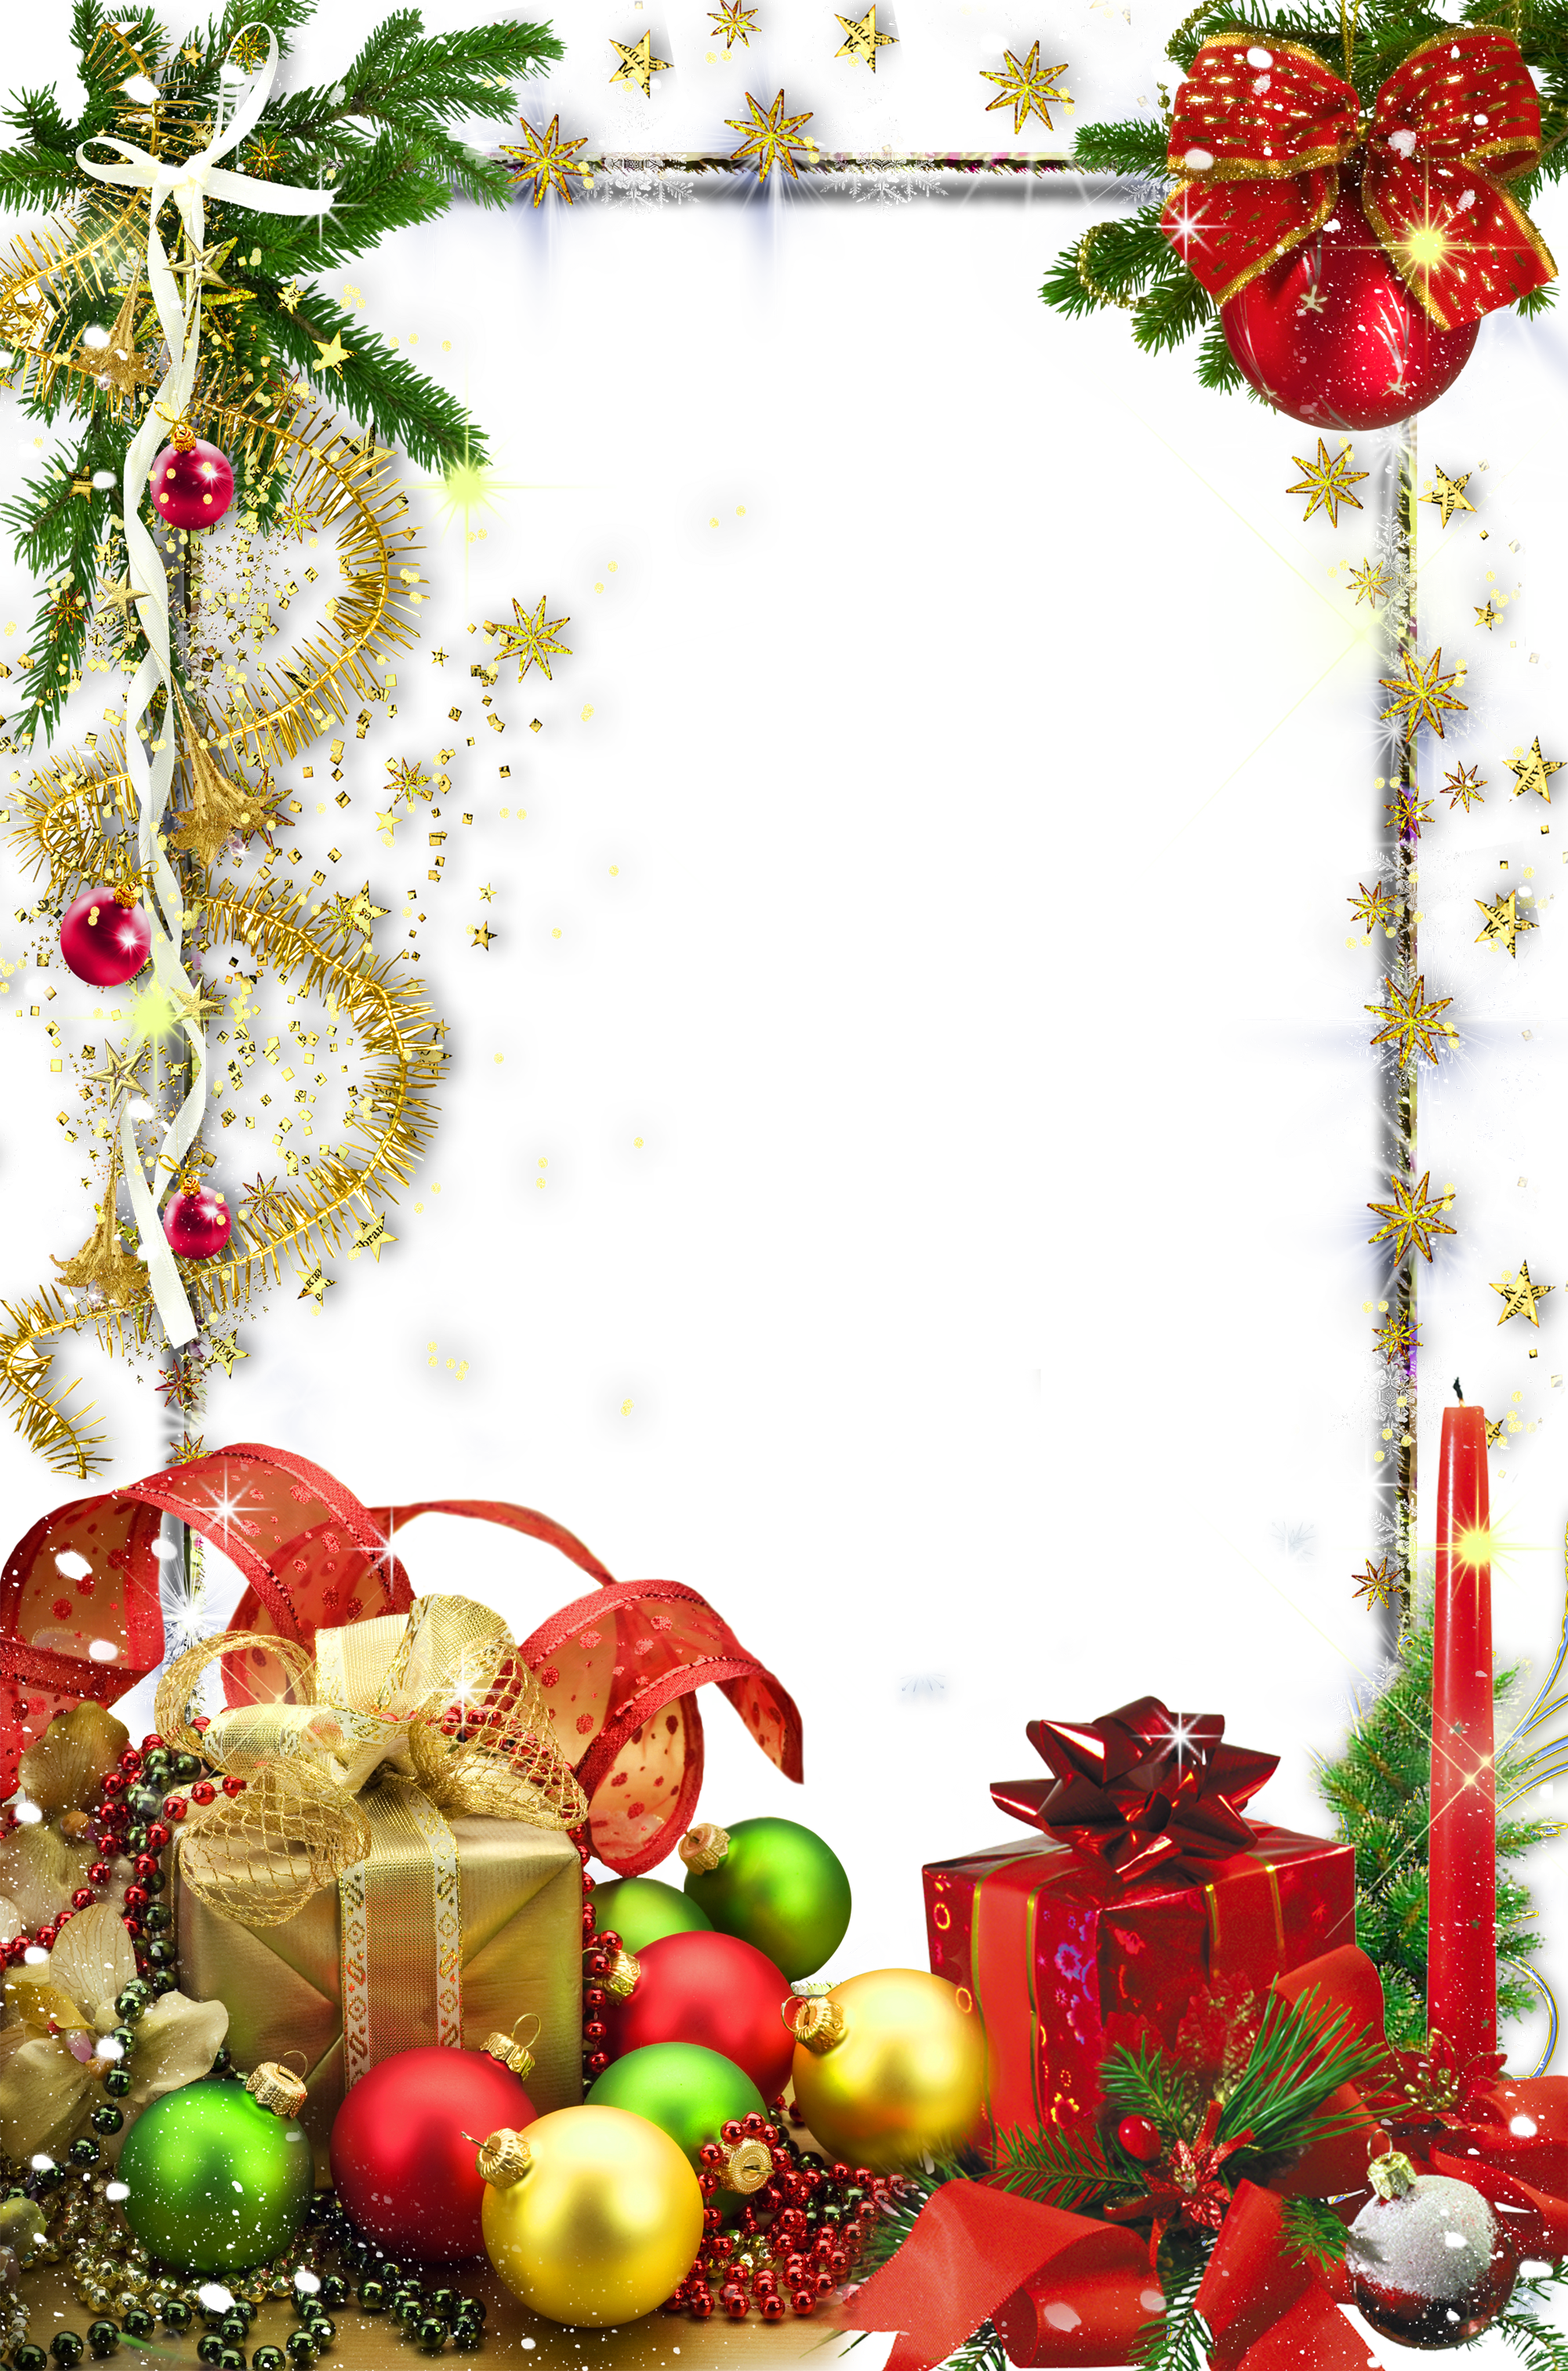 Transparent Christmas Holiday Photo Frame   Christmas❆ClipArt, PNG ...